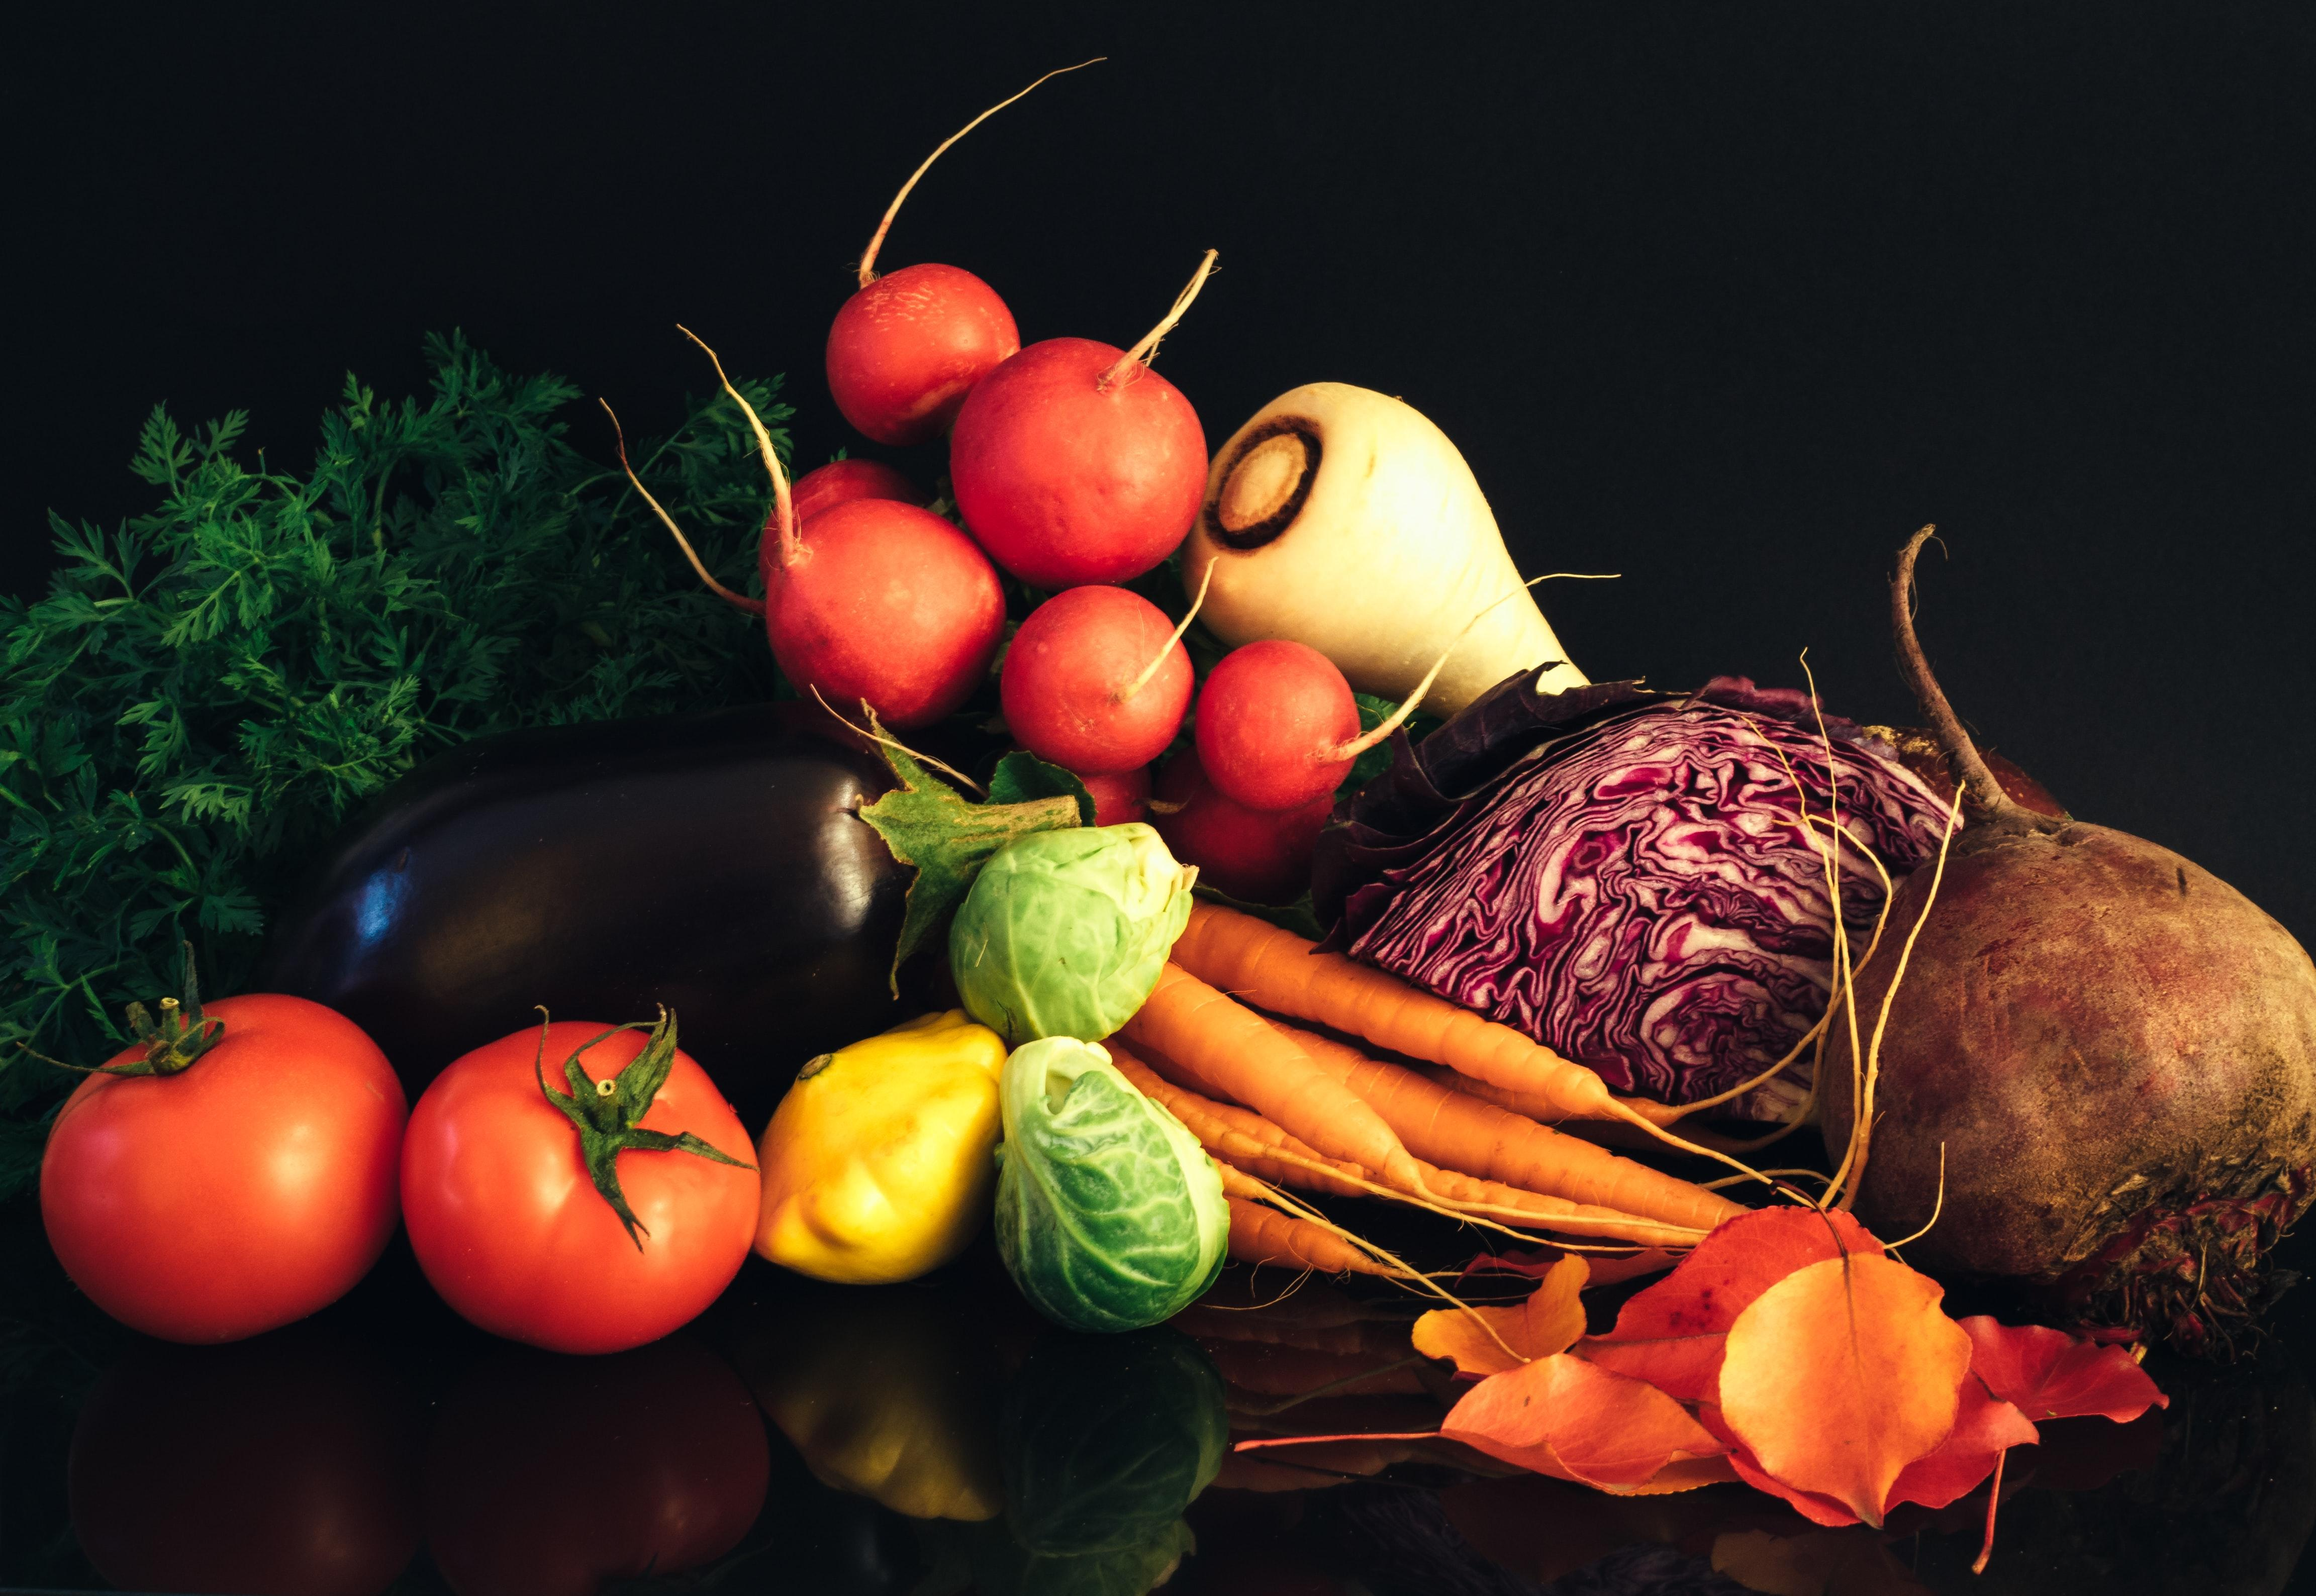 Fruits and vegetables.